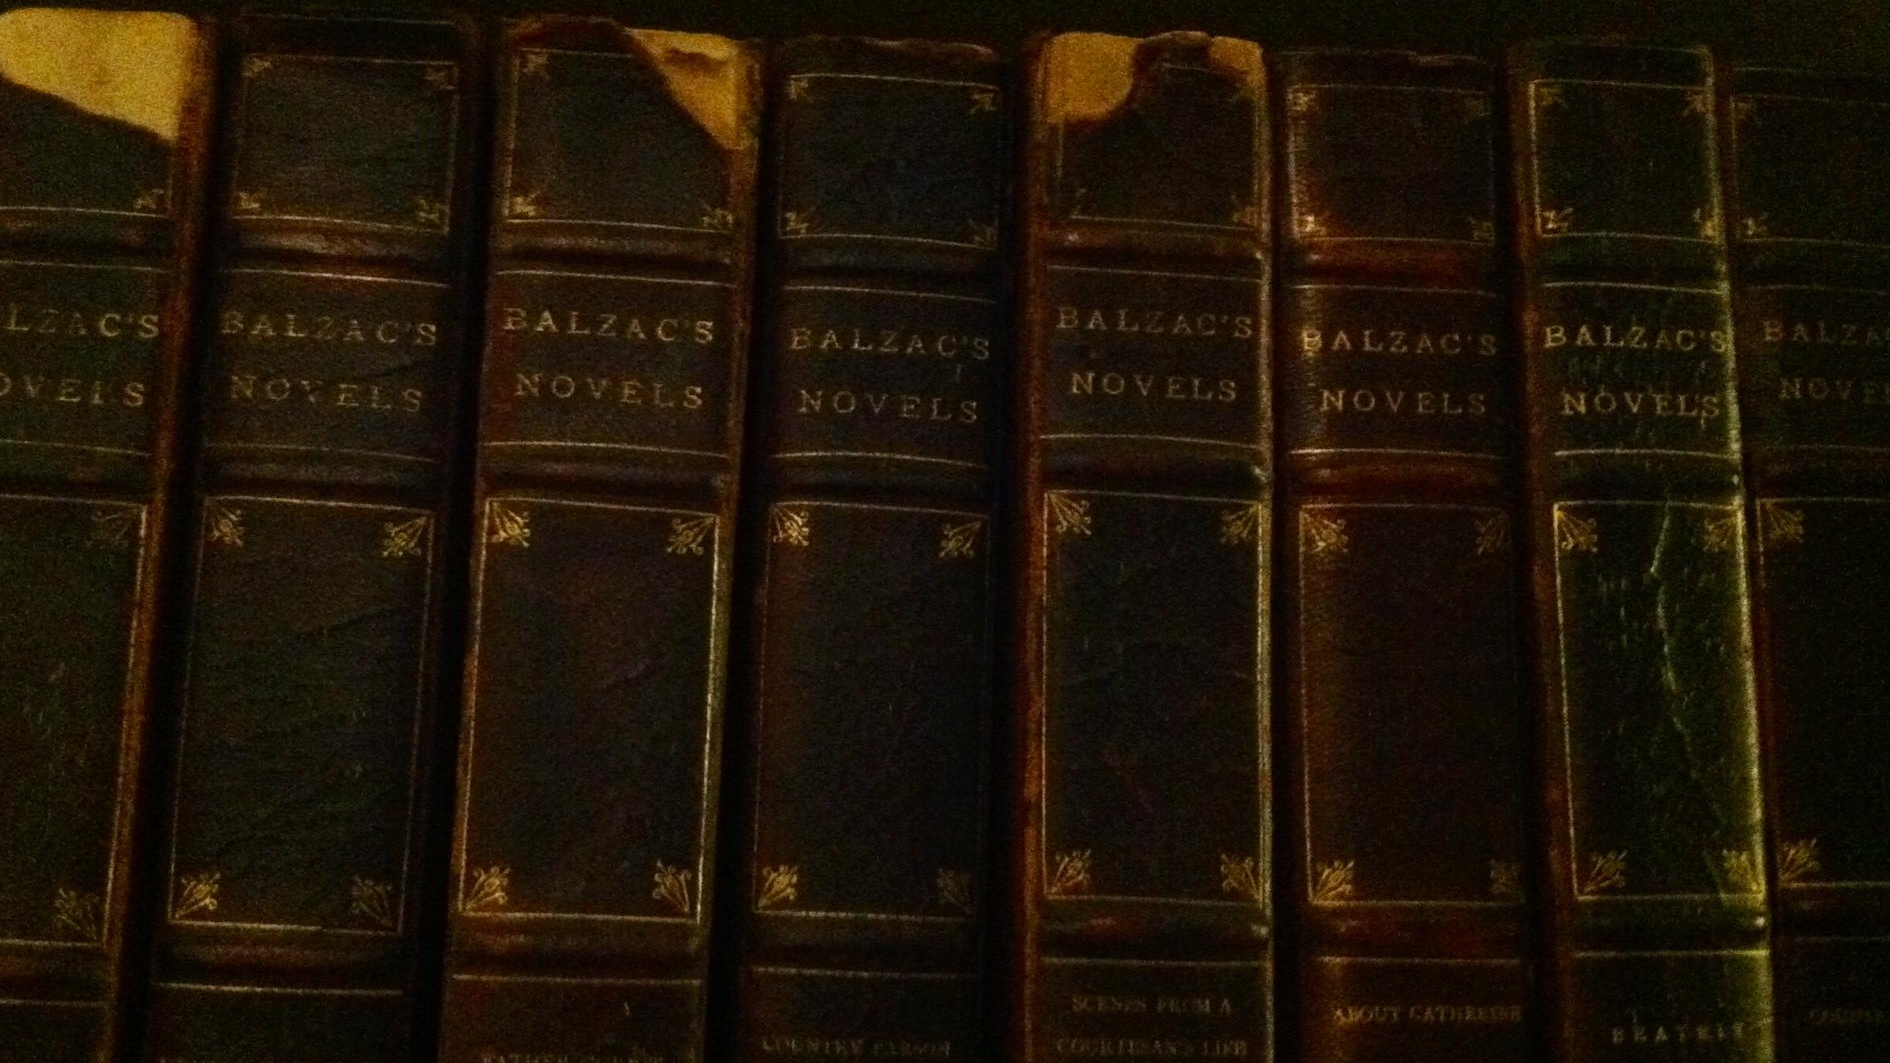 Yaddo's  Collected Balzac , shelved in West House.